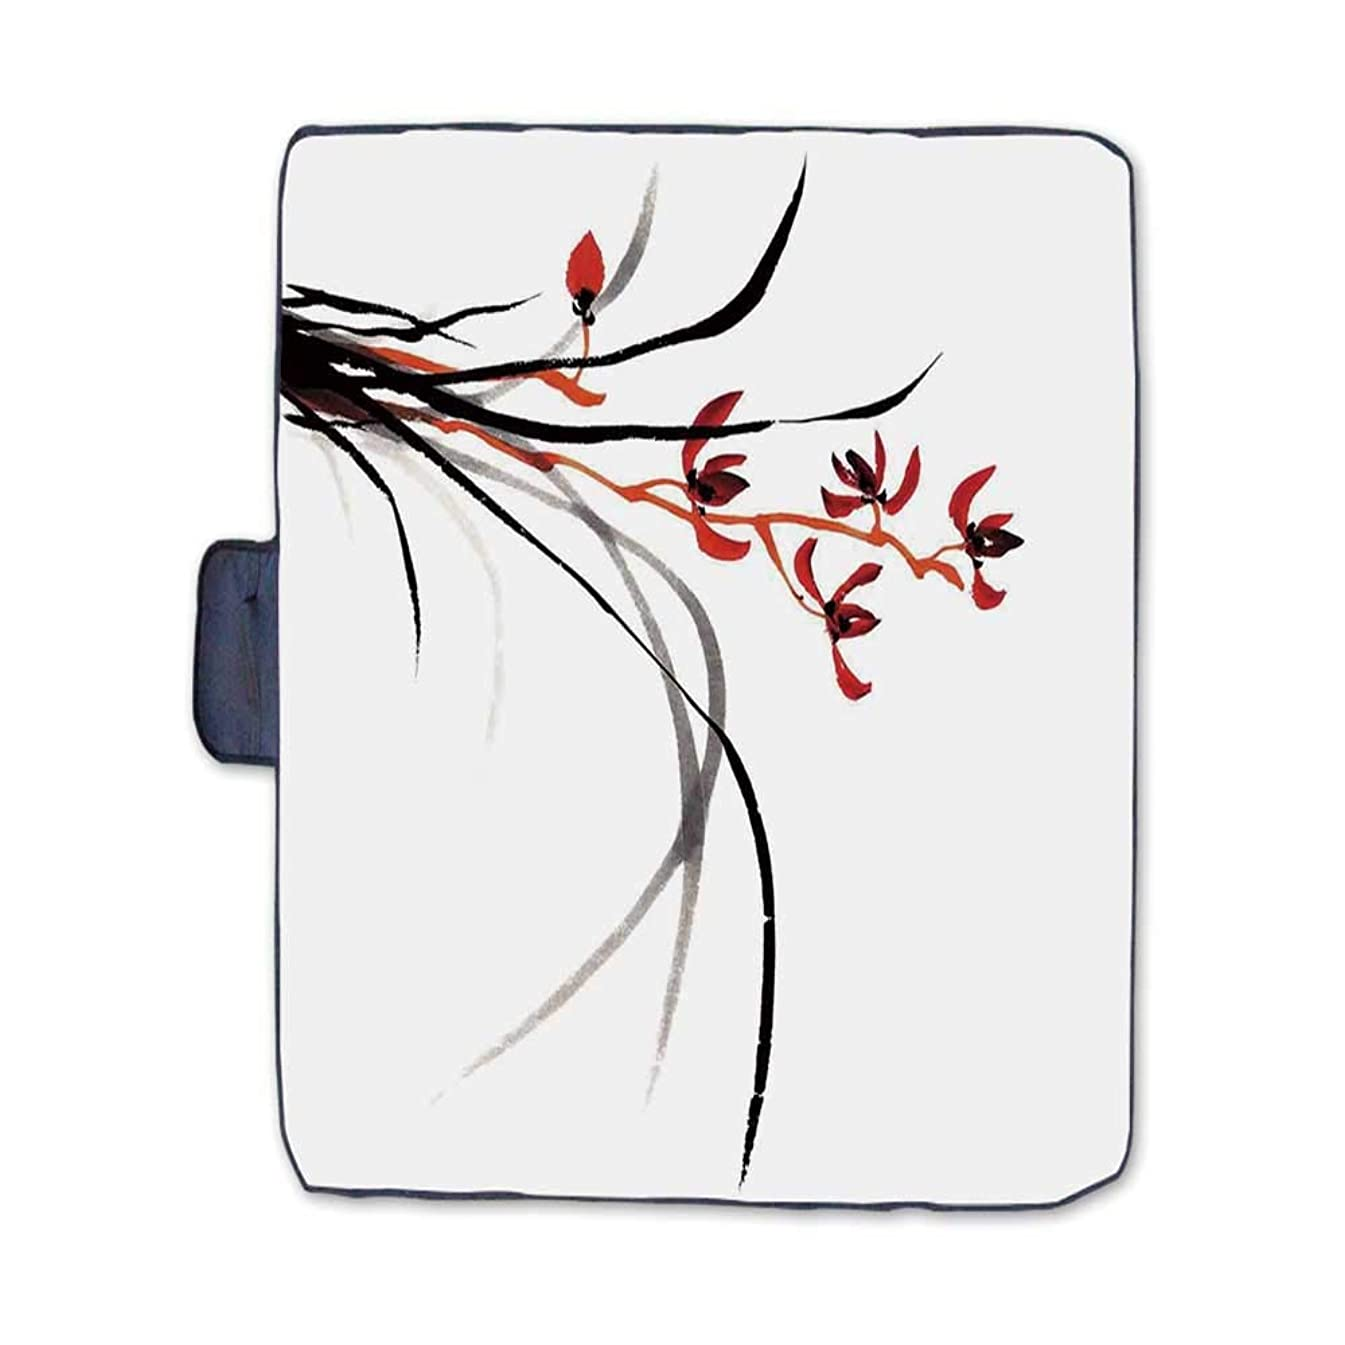 TecBillion Japanese Stylish Picnic Blanket,Classic Cultural Chinese Ink Paint Print of Native Wild Orchids Reflexive Birches Mat for Picnics Beaches Camping,58